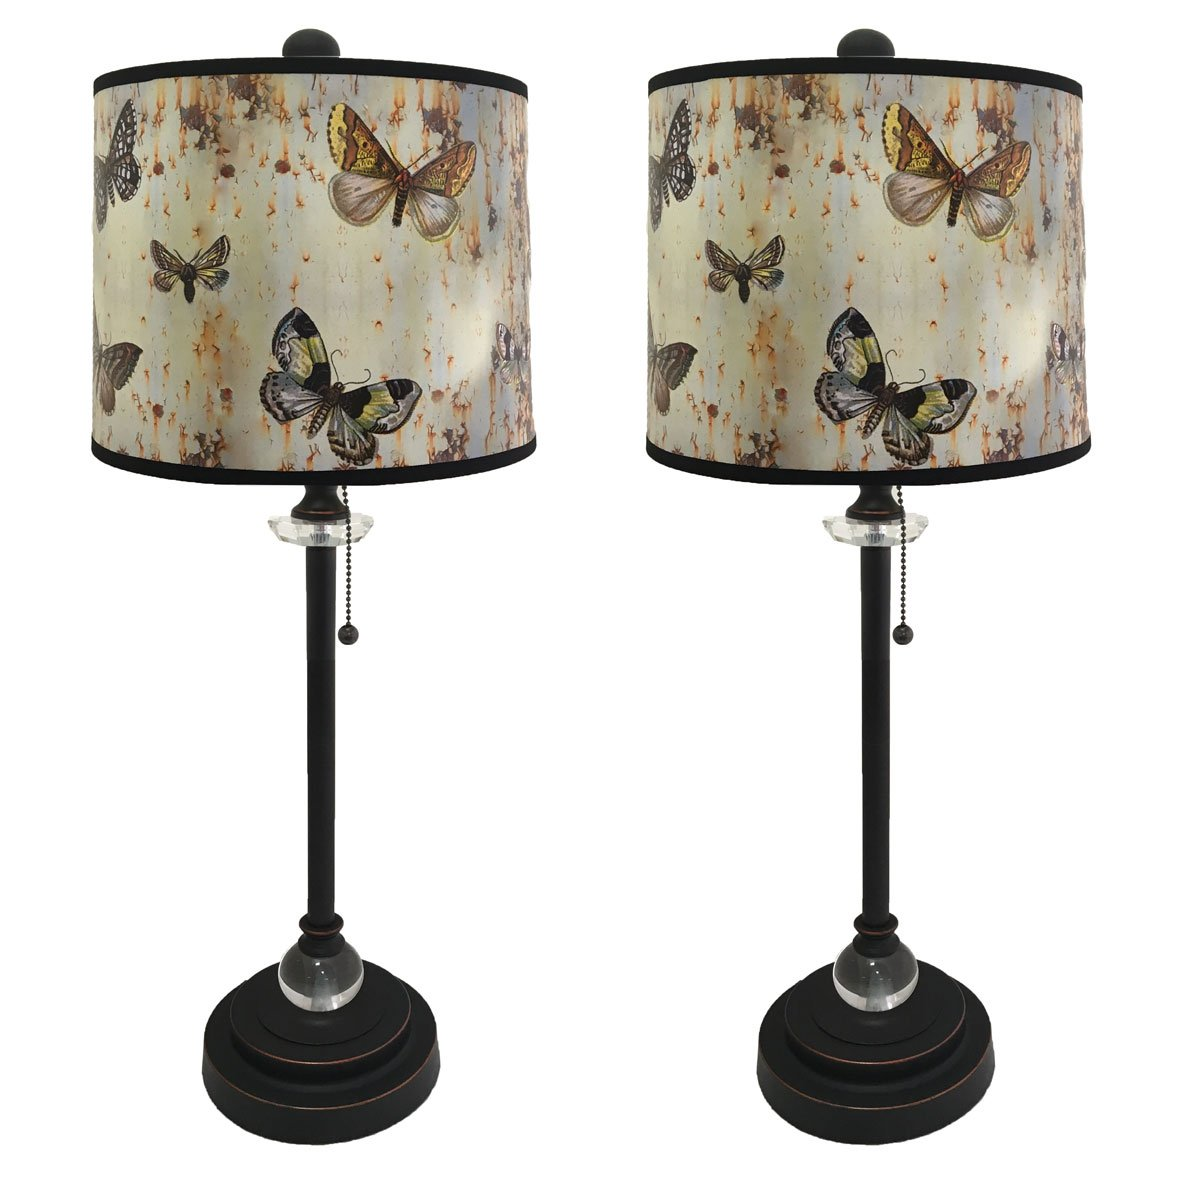 Royal Designs 28'' Crystal and Oil Rub Bronze Buffet Lamp with Bufferfly Graphic Design Hard Back Lamp Shade, Set of 2 by Royal Designs, Inc